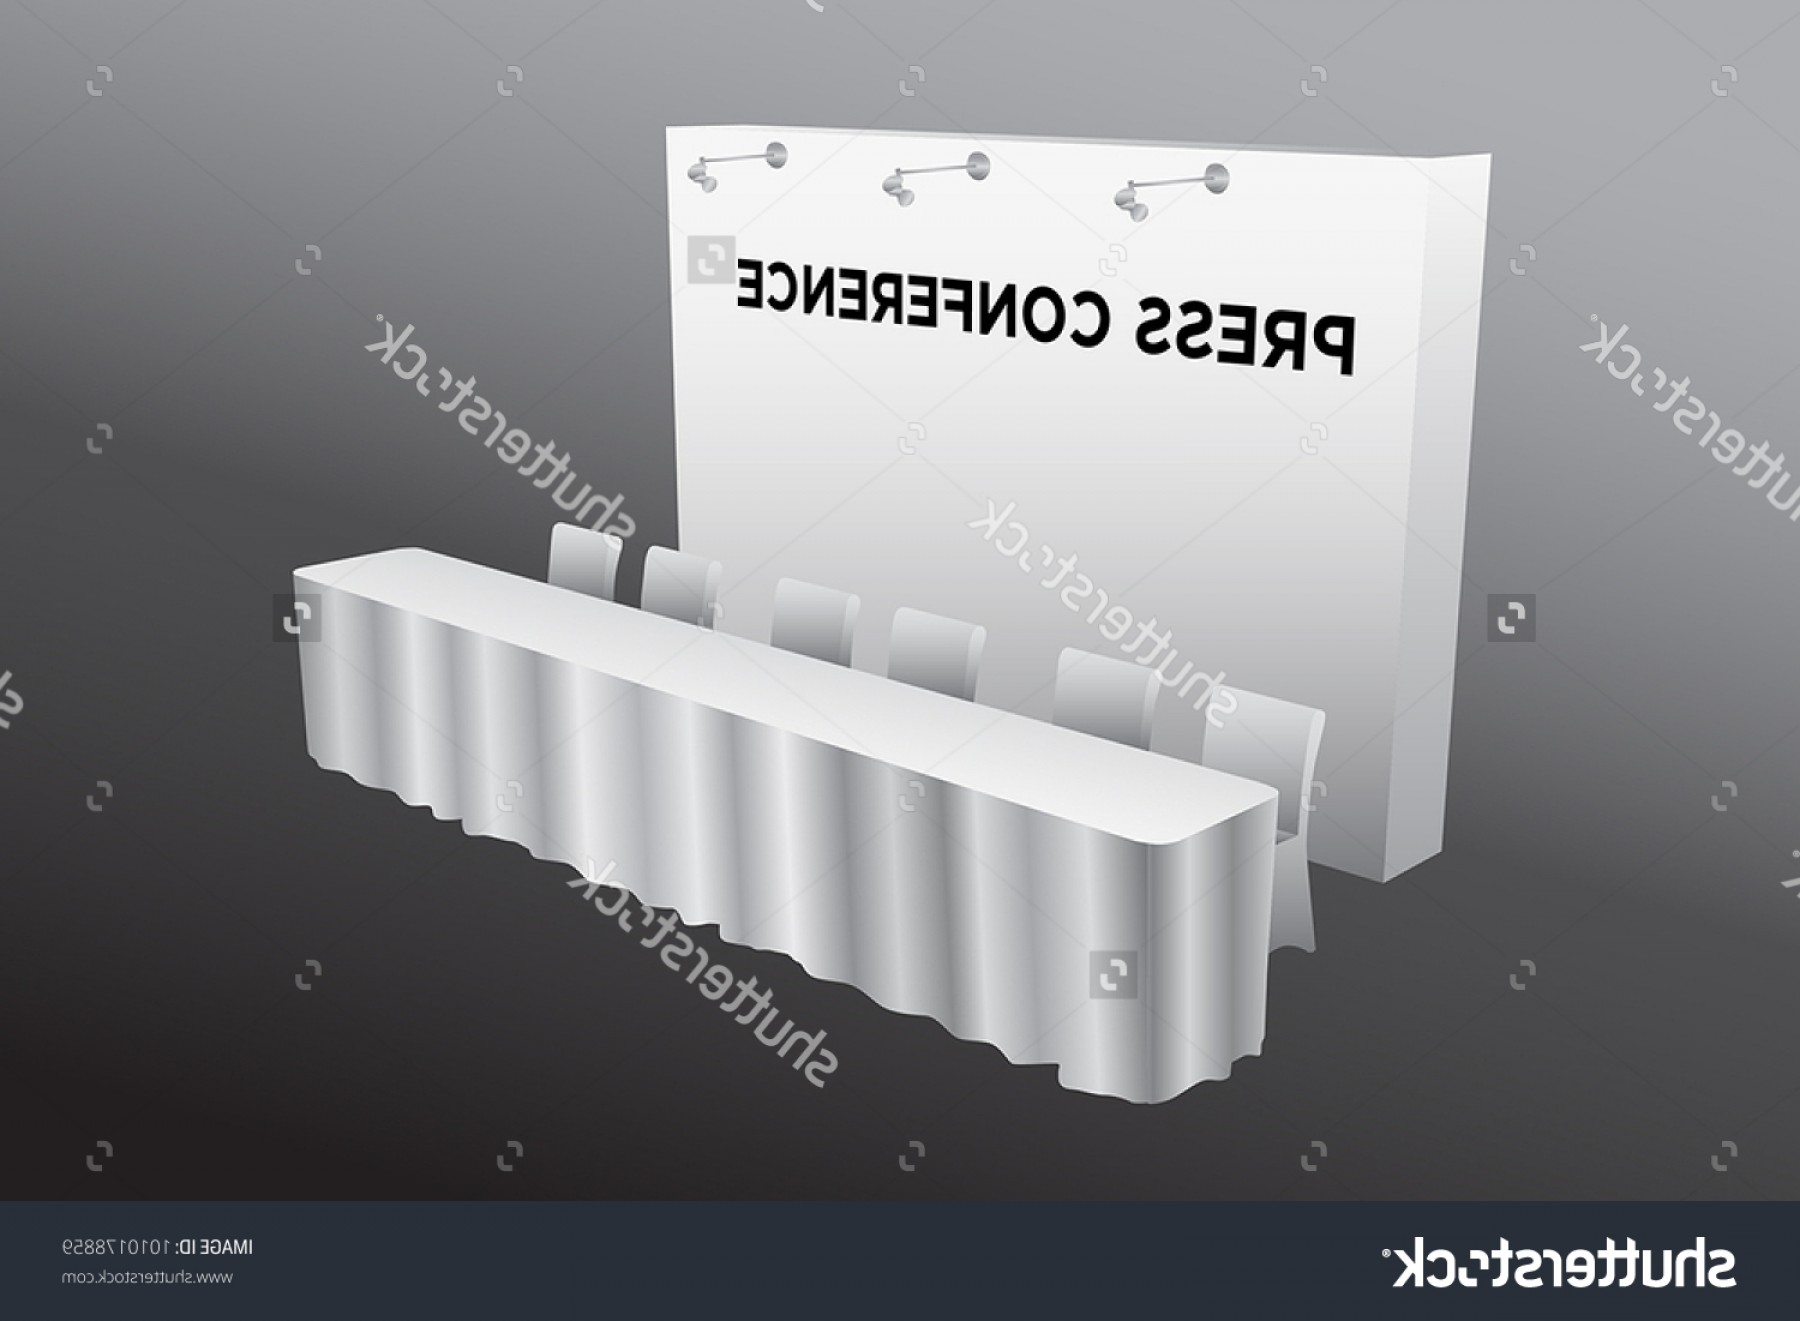 Vector Spotlight 3 Million: Press Conference Table Backdrop Spotlight White